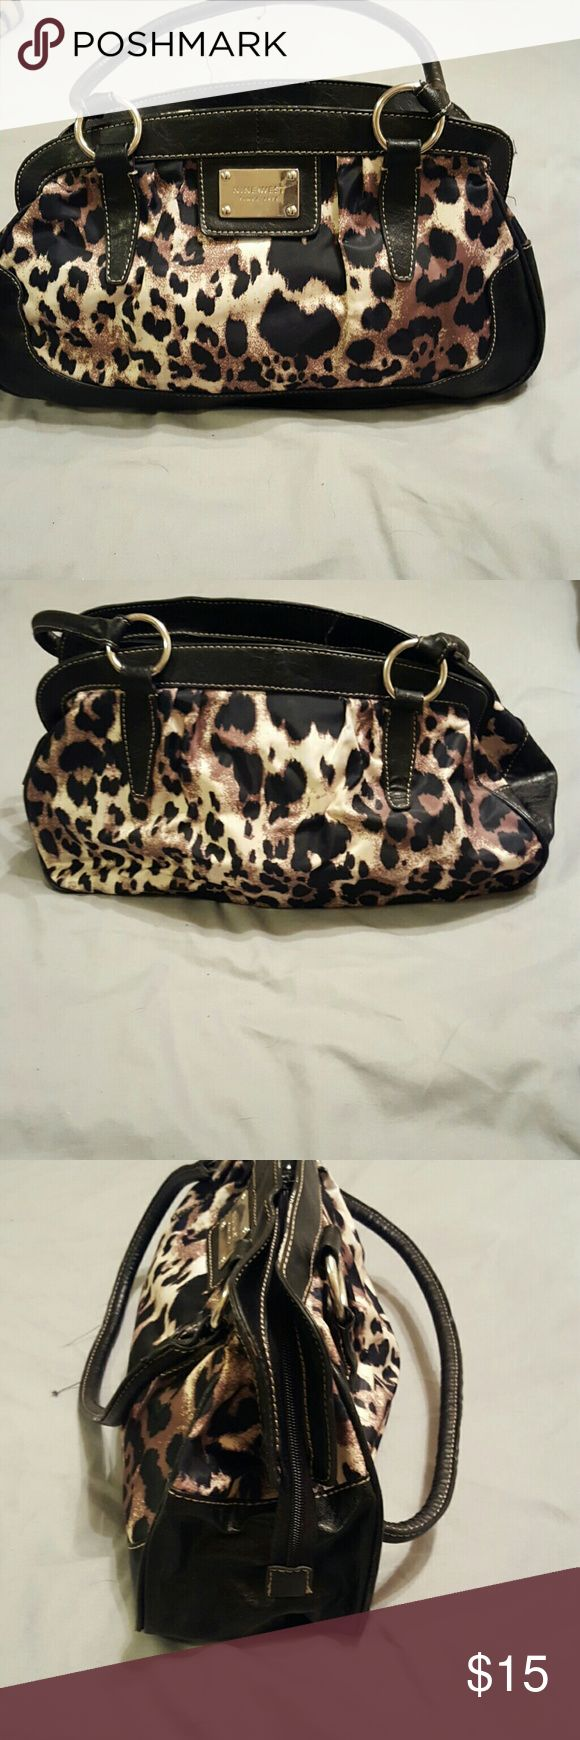 Leapard print Nine West purse Super cute Nine West bag in leapard print. Only signs of wear are a few loose threads on handles that can be trimmed off and slight wear on bottom corners, not noticeable unless looking close at the bottom. Lined inside with zip pocket. Nine West Bags